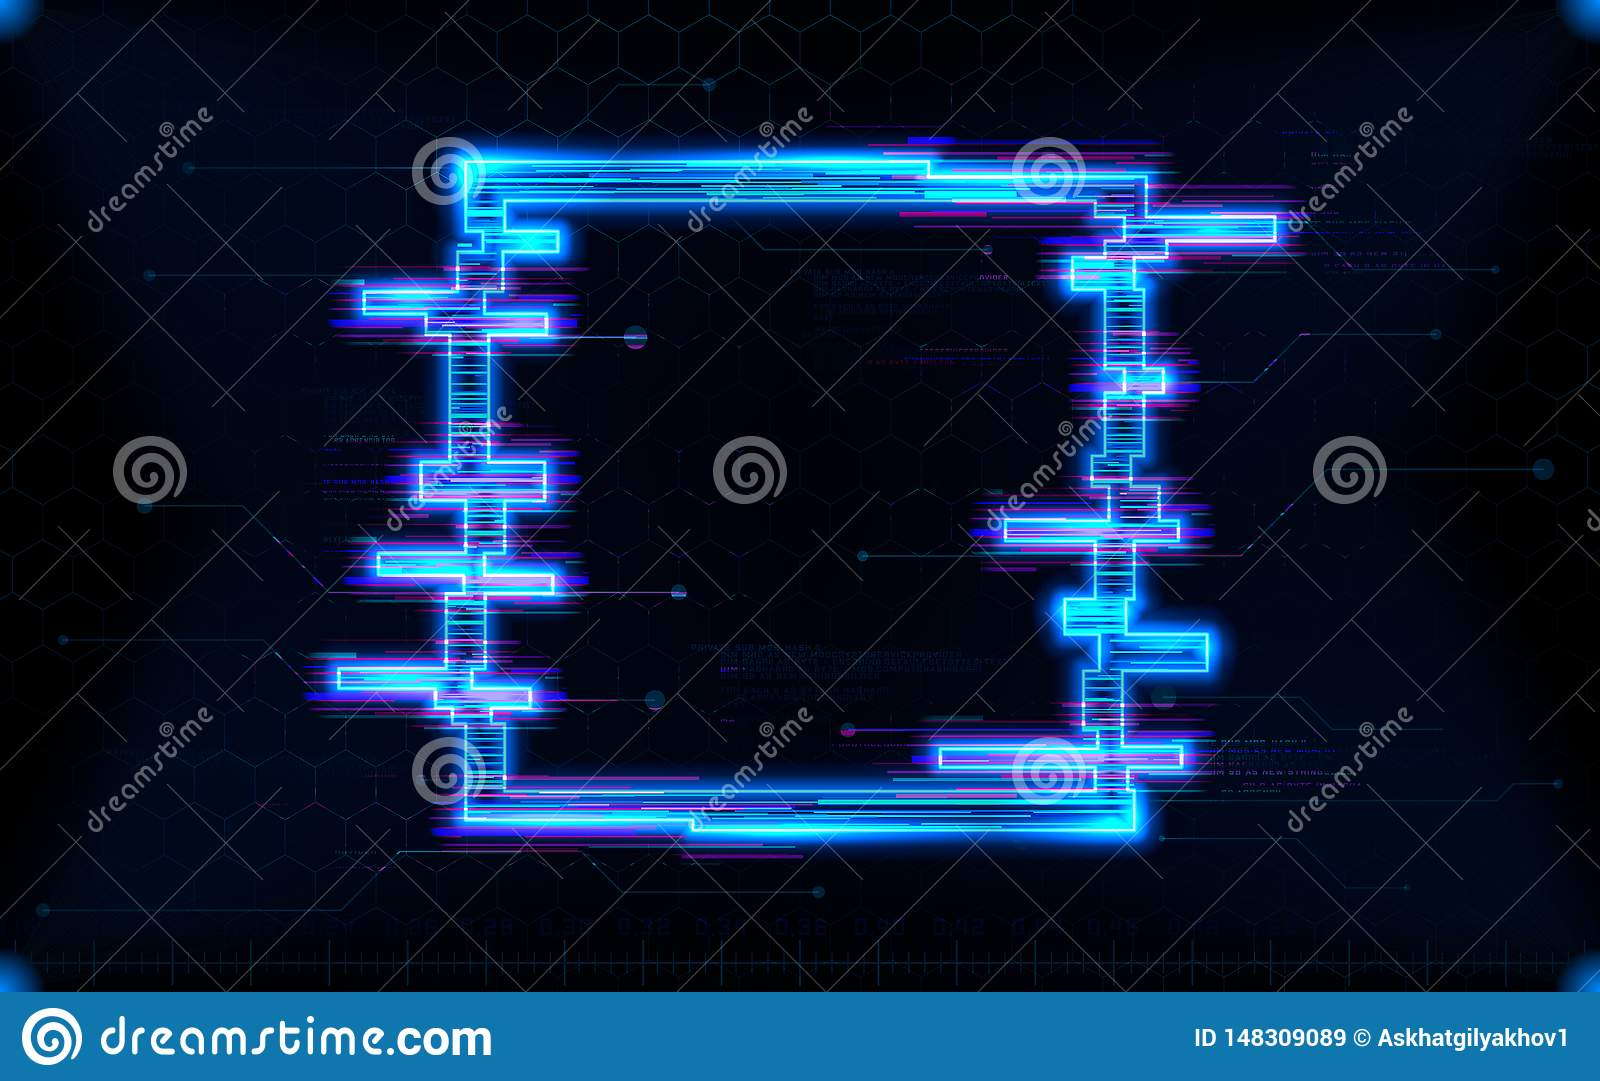 Futuristic hologram HUD square shape with neon glowing